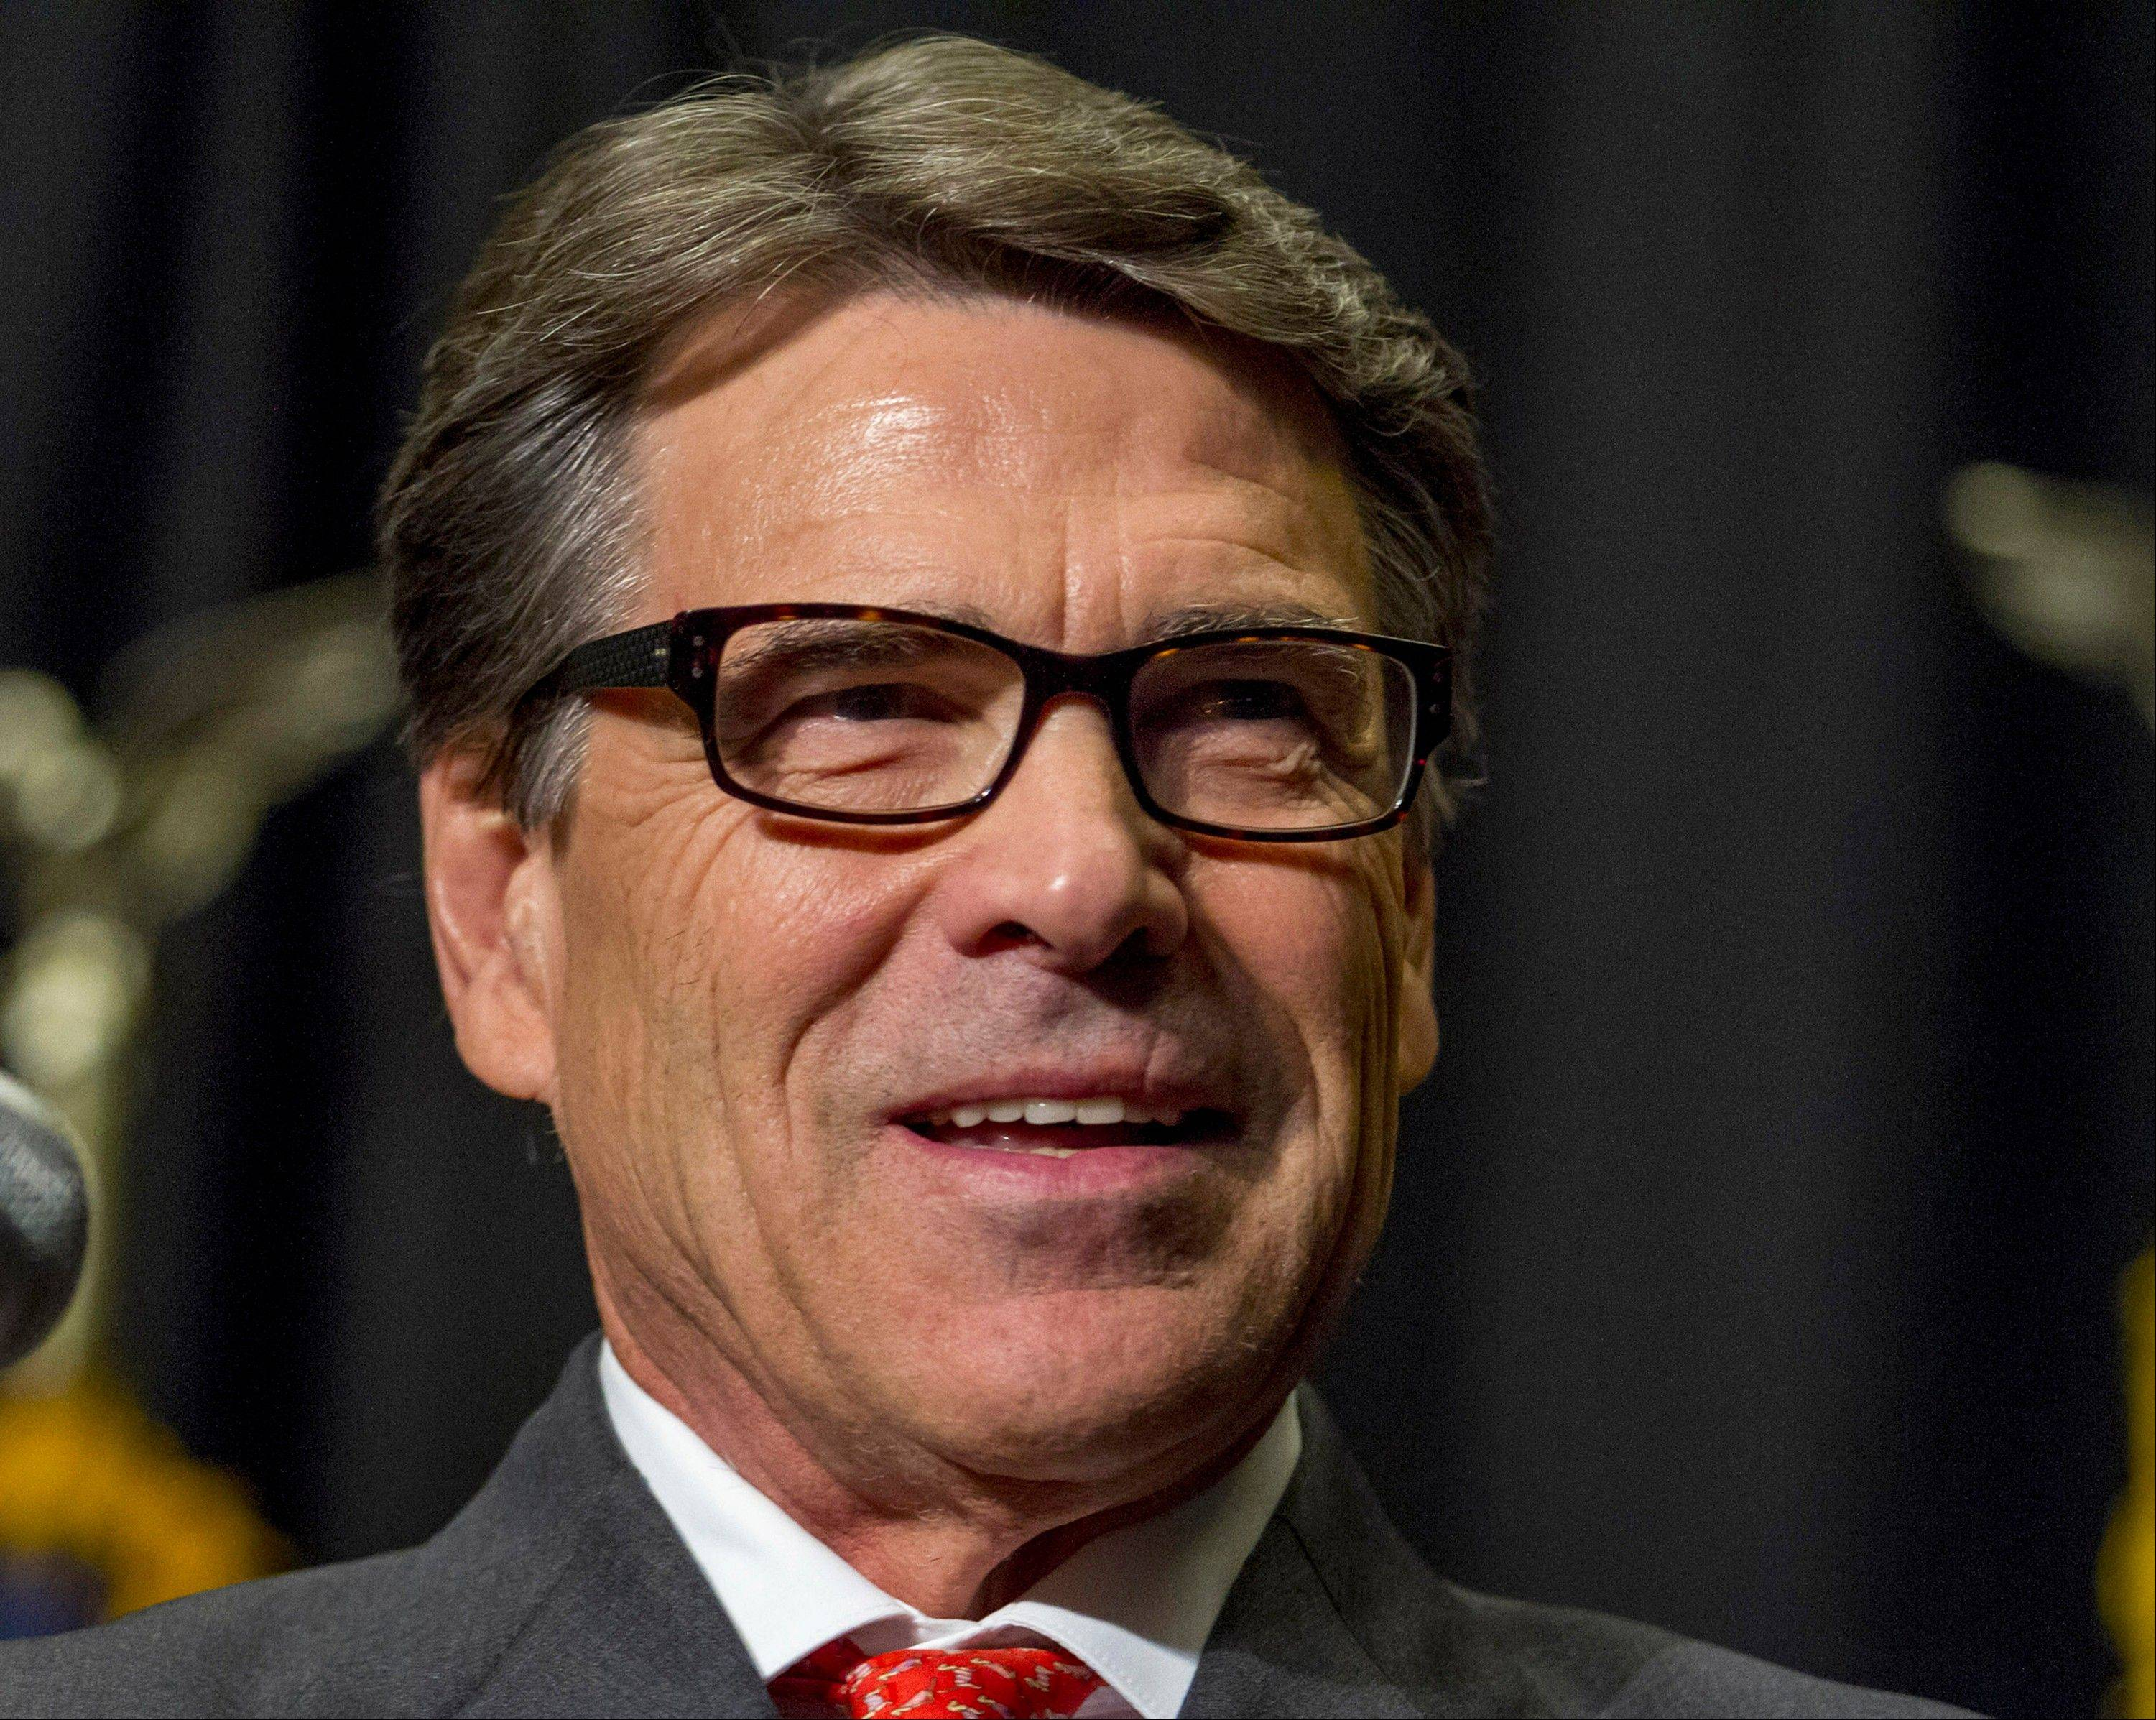 A look at potential presidential candidate Rick Perry